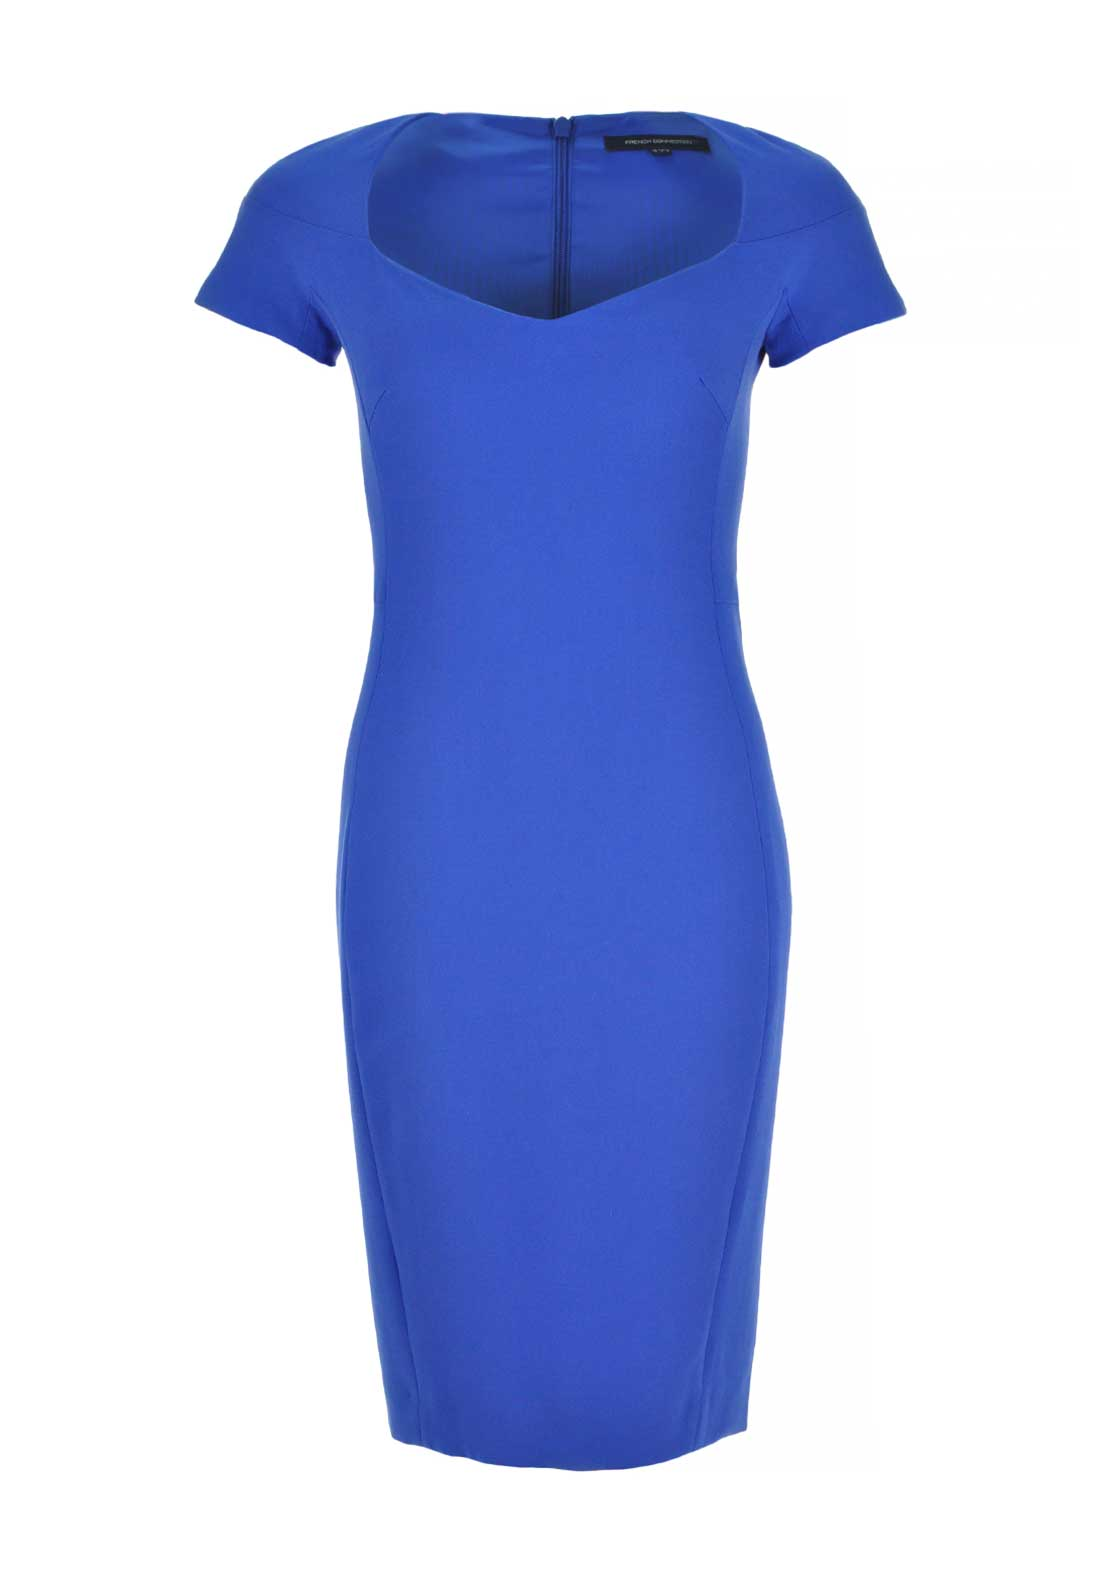 French Connection Short Sleeve Bodycon Dress, Empire Blue